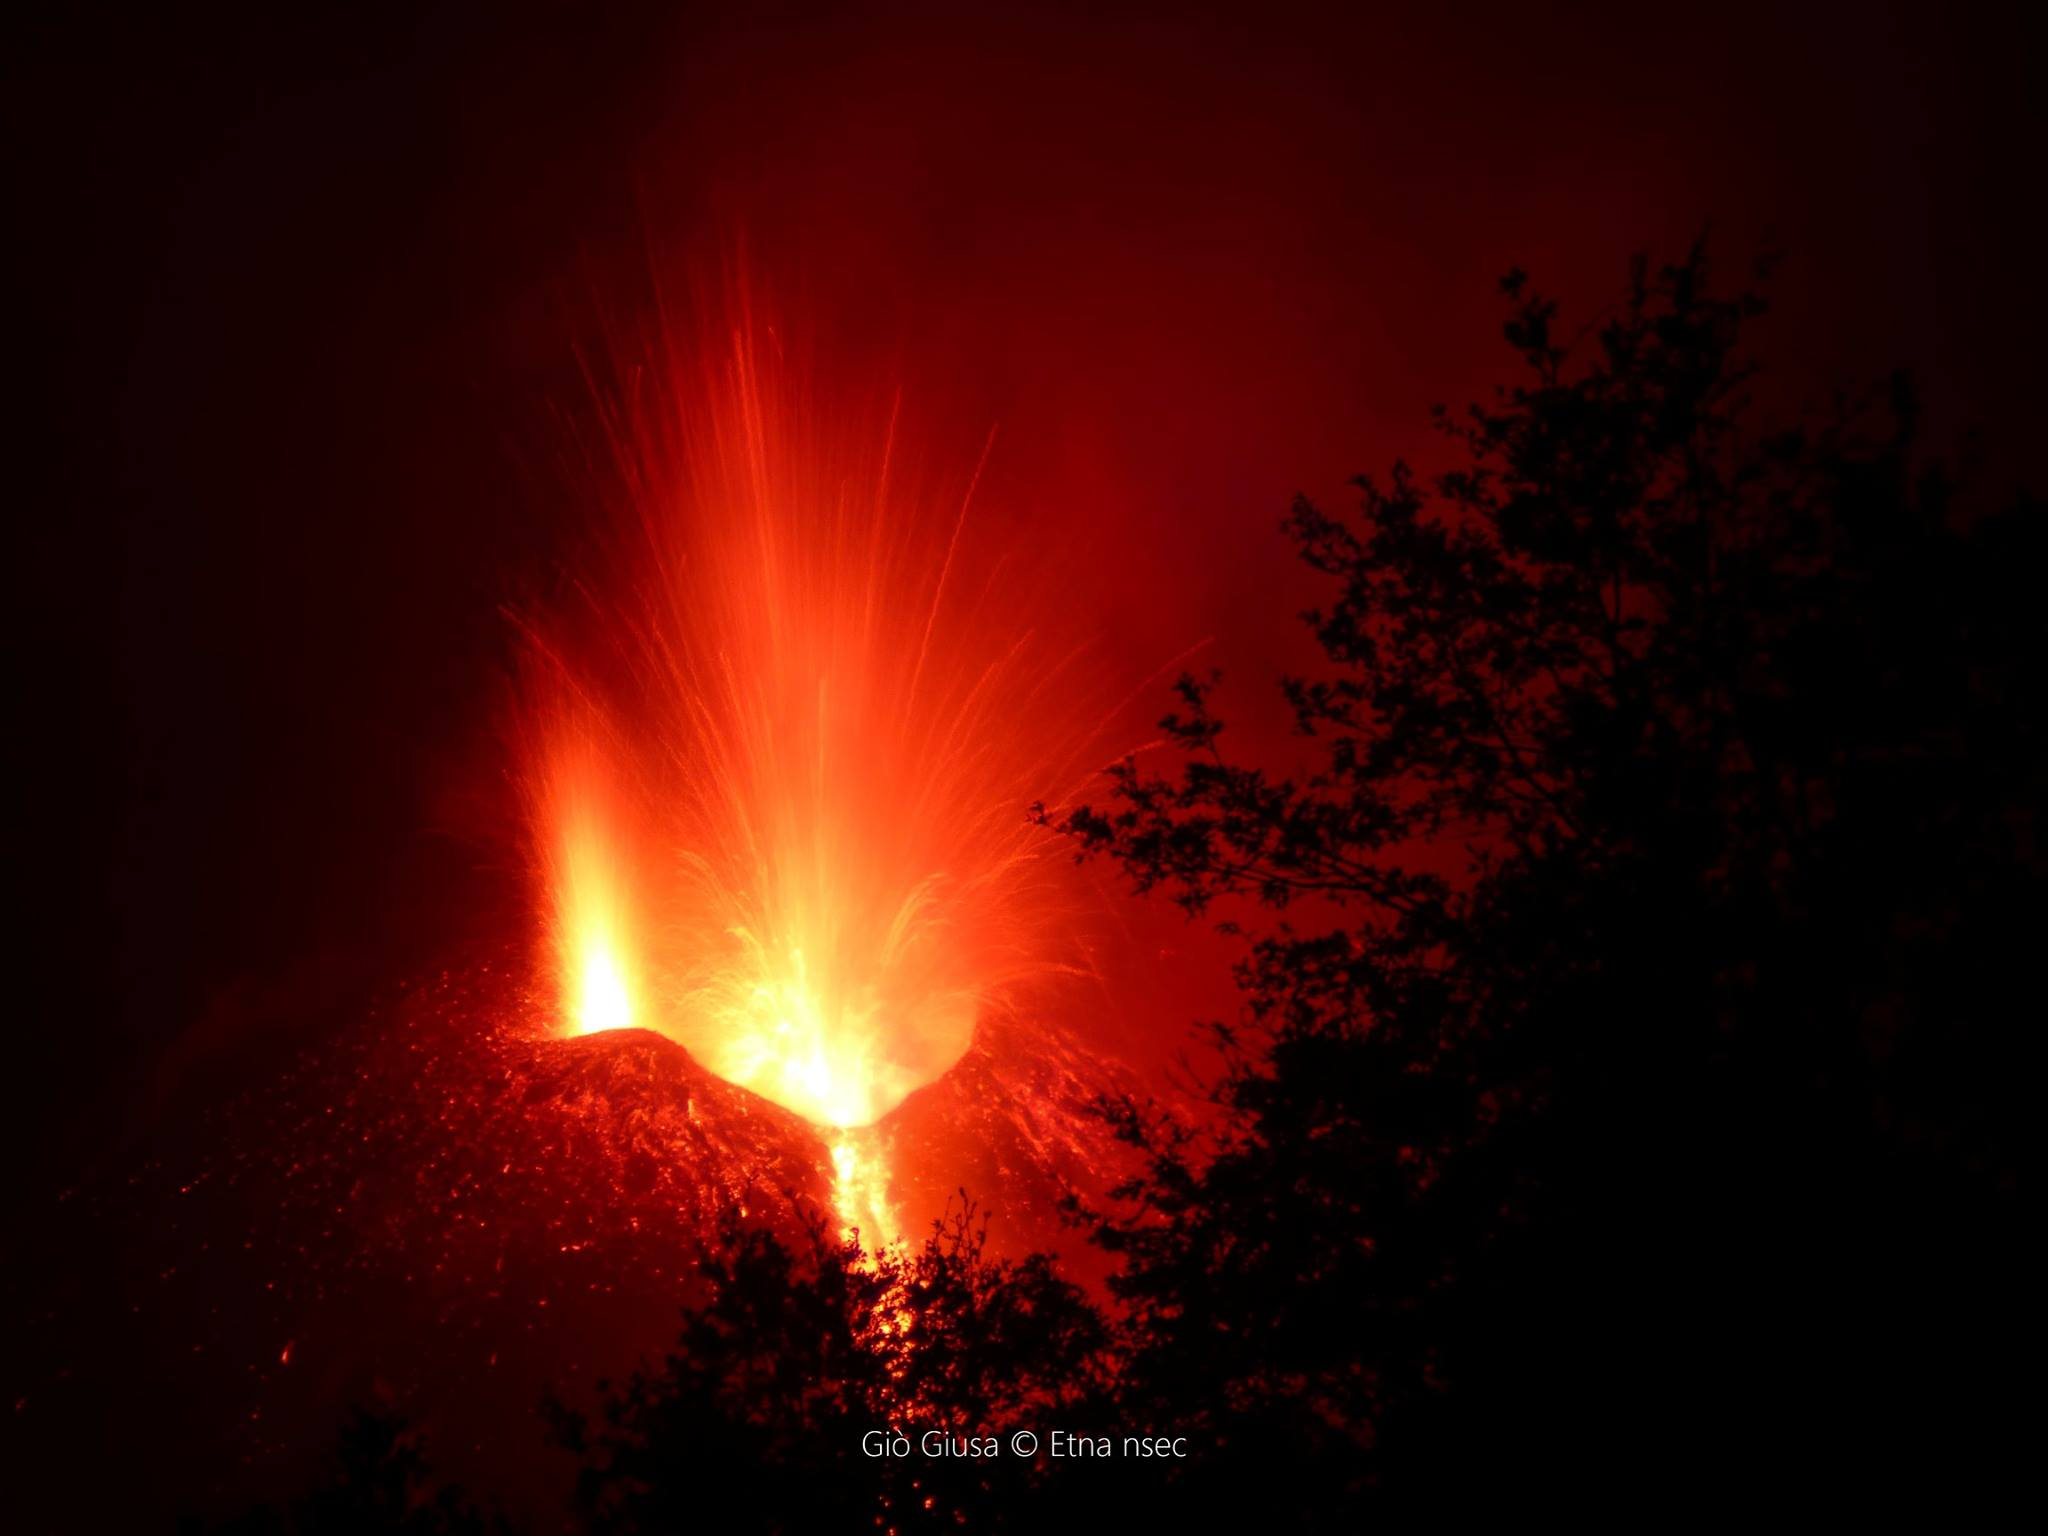 December 08, 2015. EN. Etna , Turrialba, Colima .